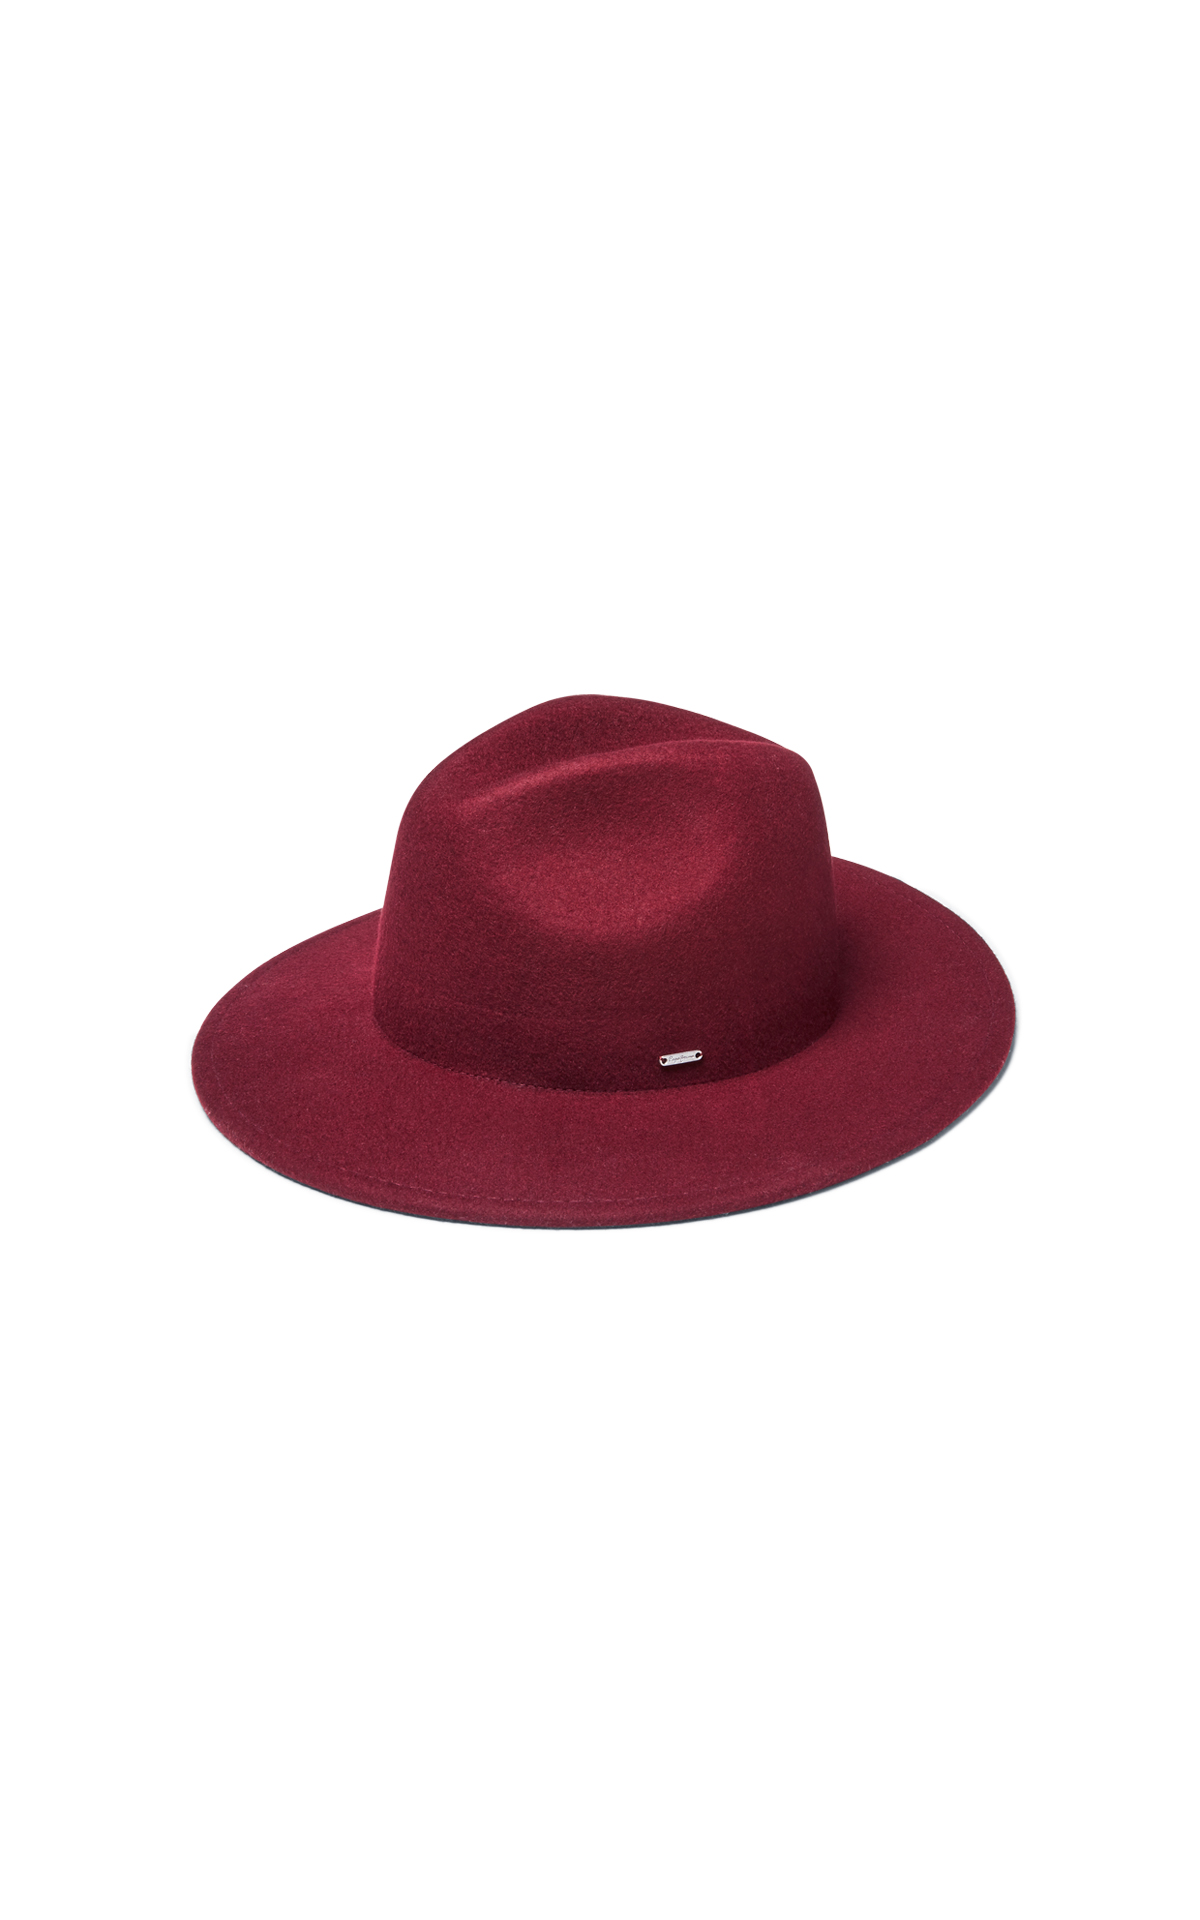 Bordeaux hat Pepe Jeans